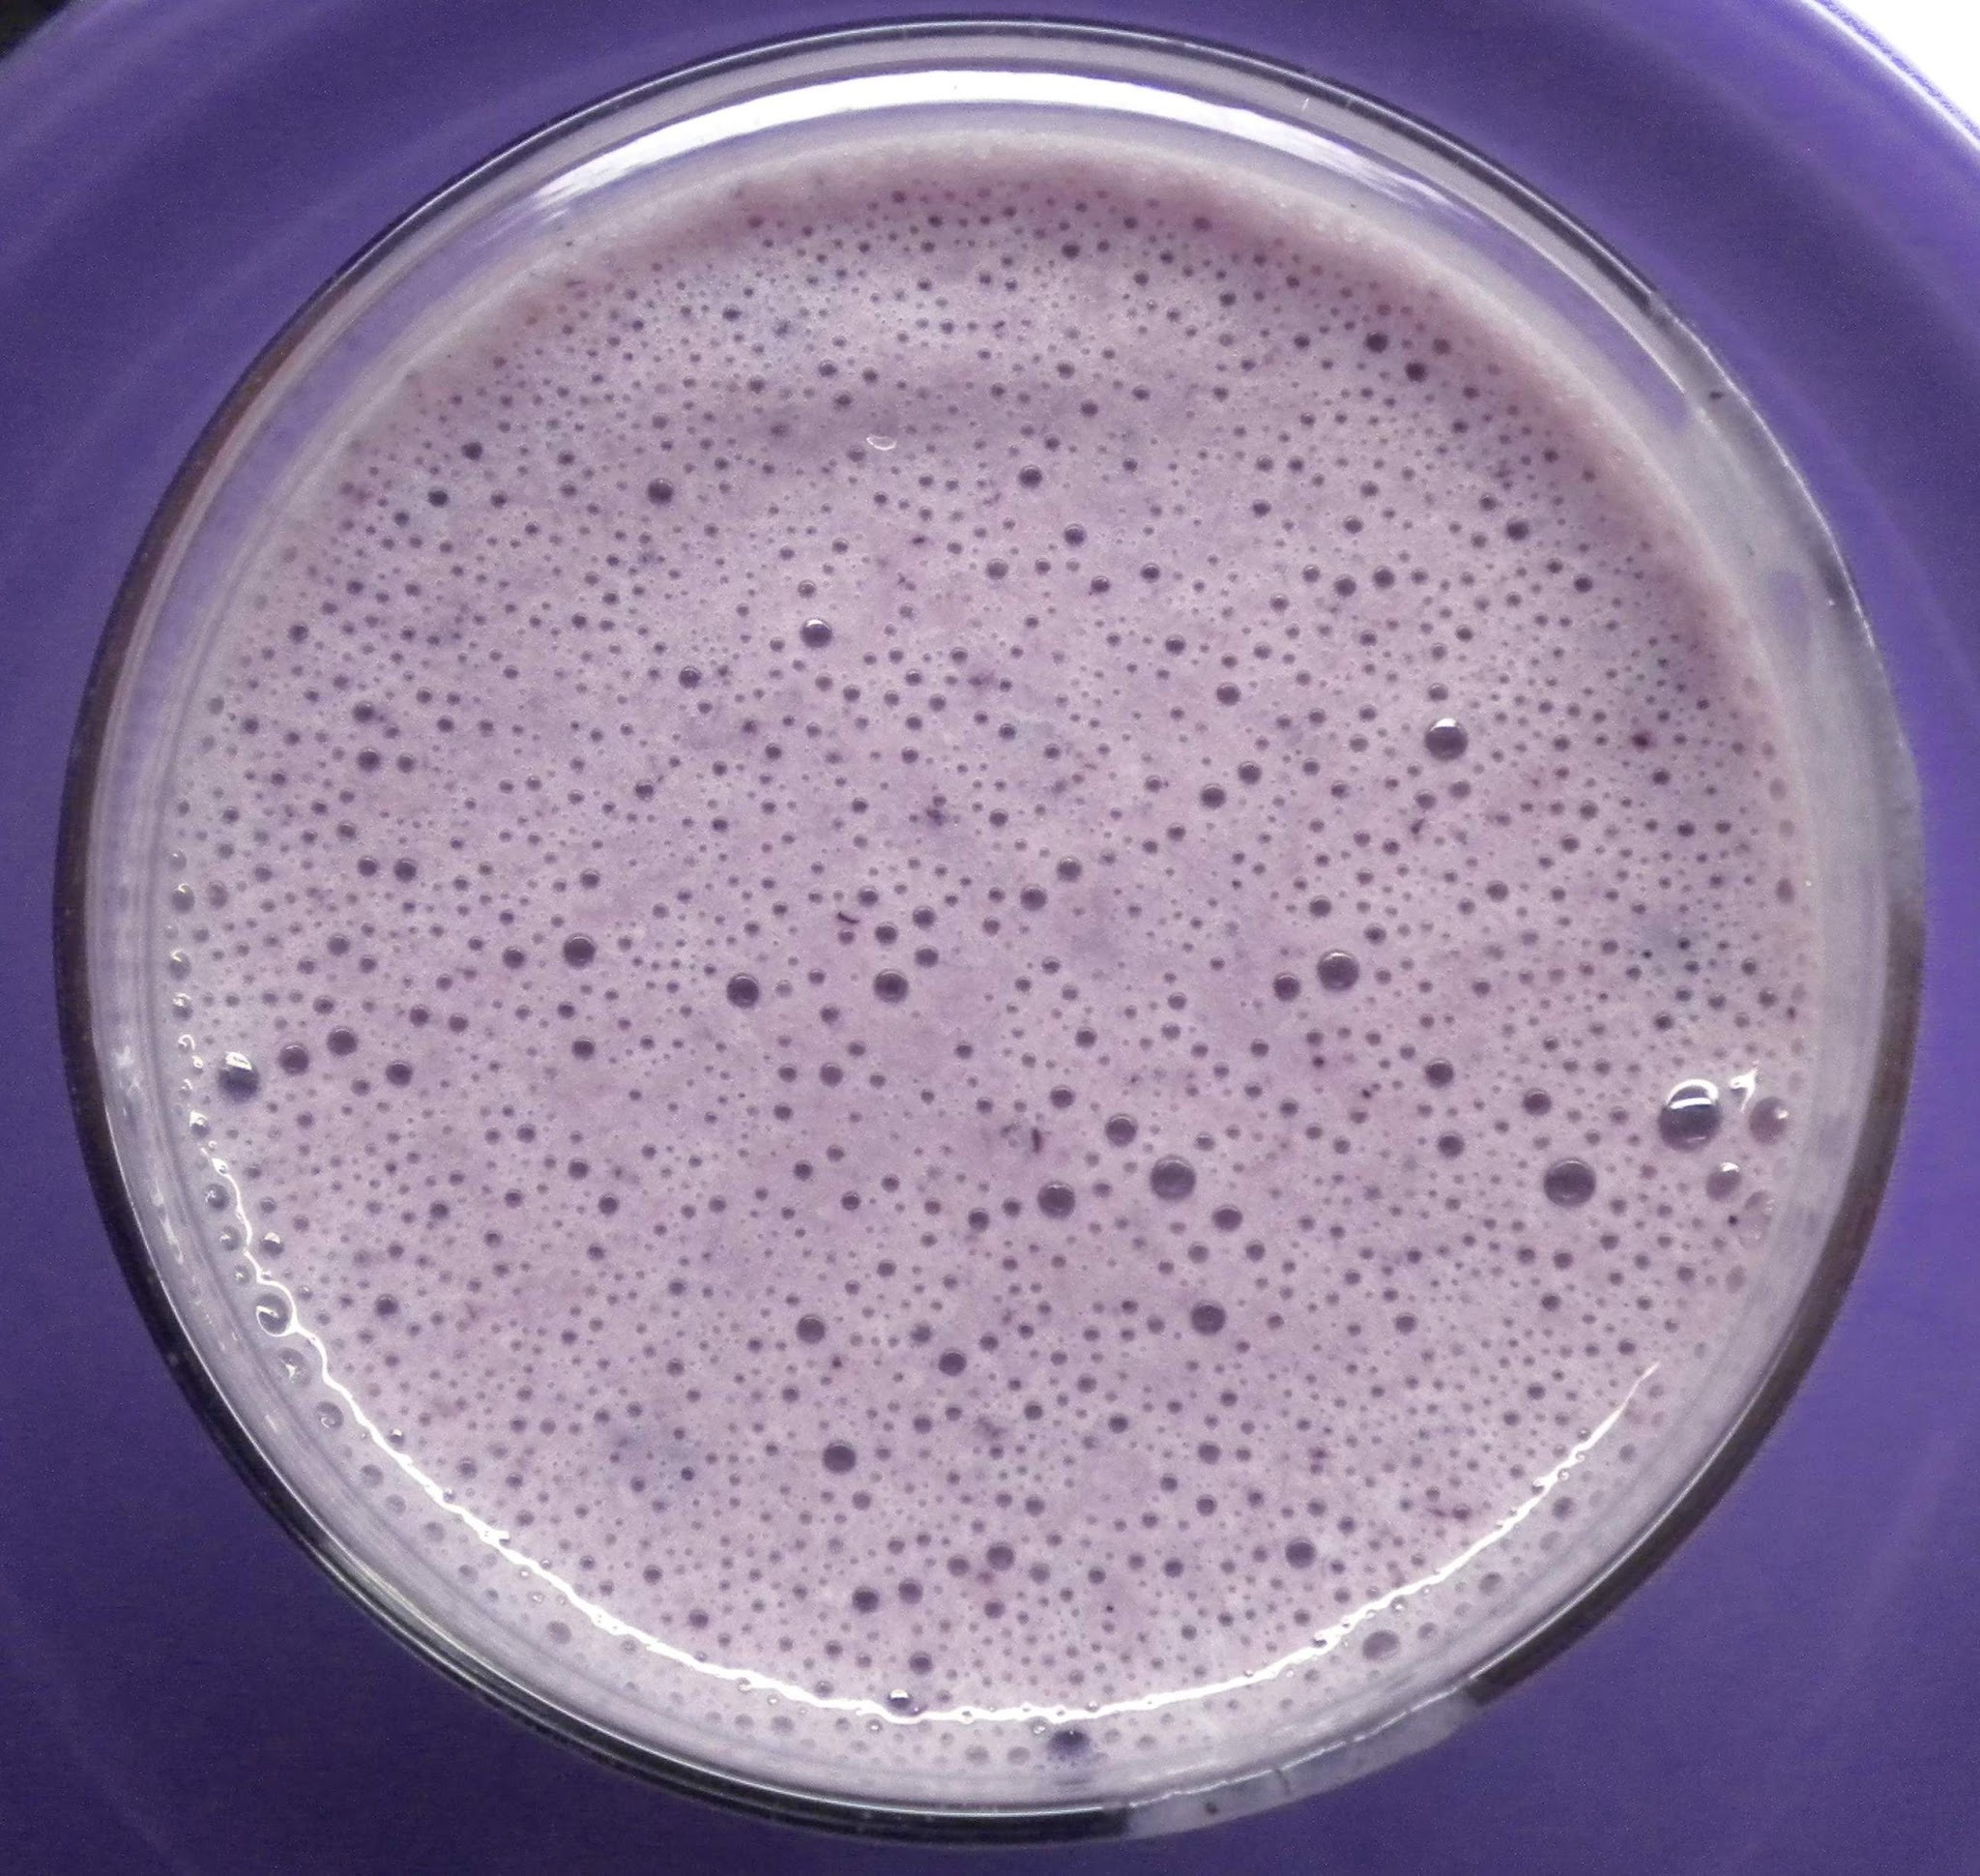 Purple milkshake